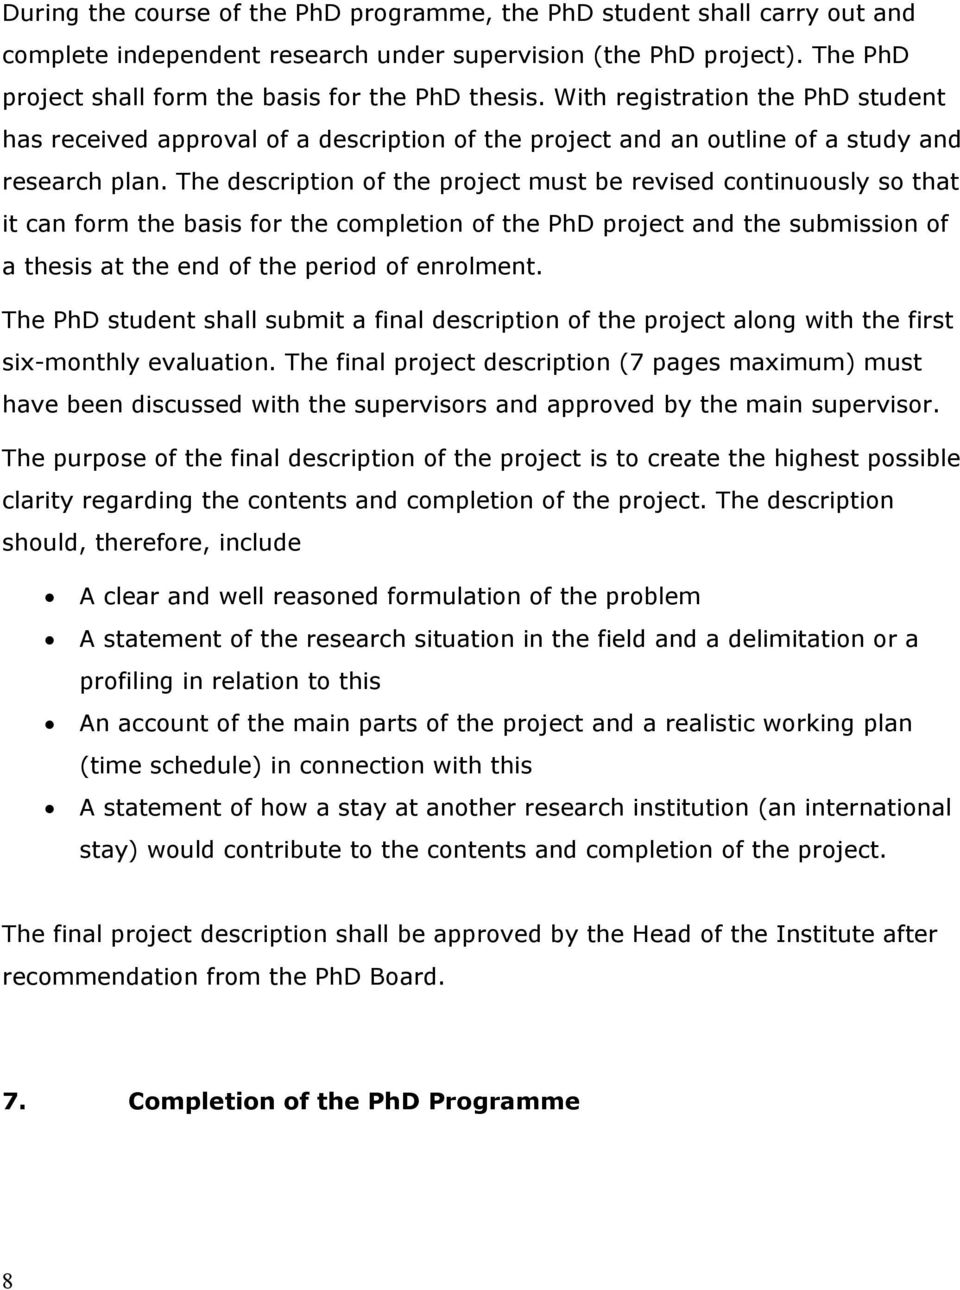 The description of the project must be revised continuously so that it can form the basis for the completion of the PhD project and the submission of a thesis at the end of the period of enrolment.